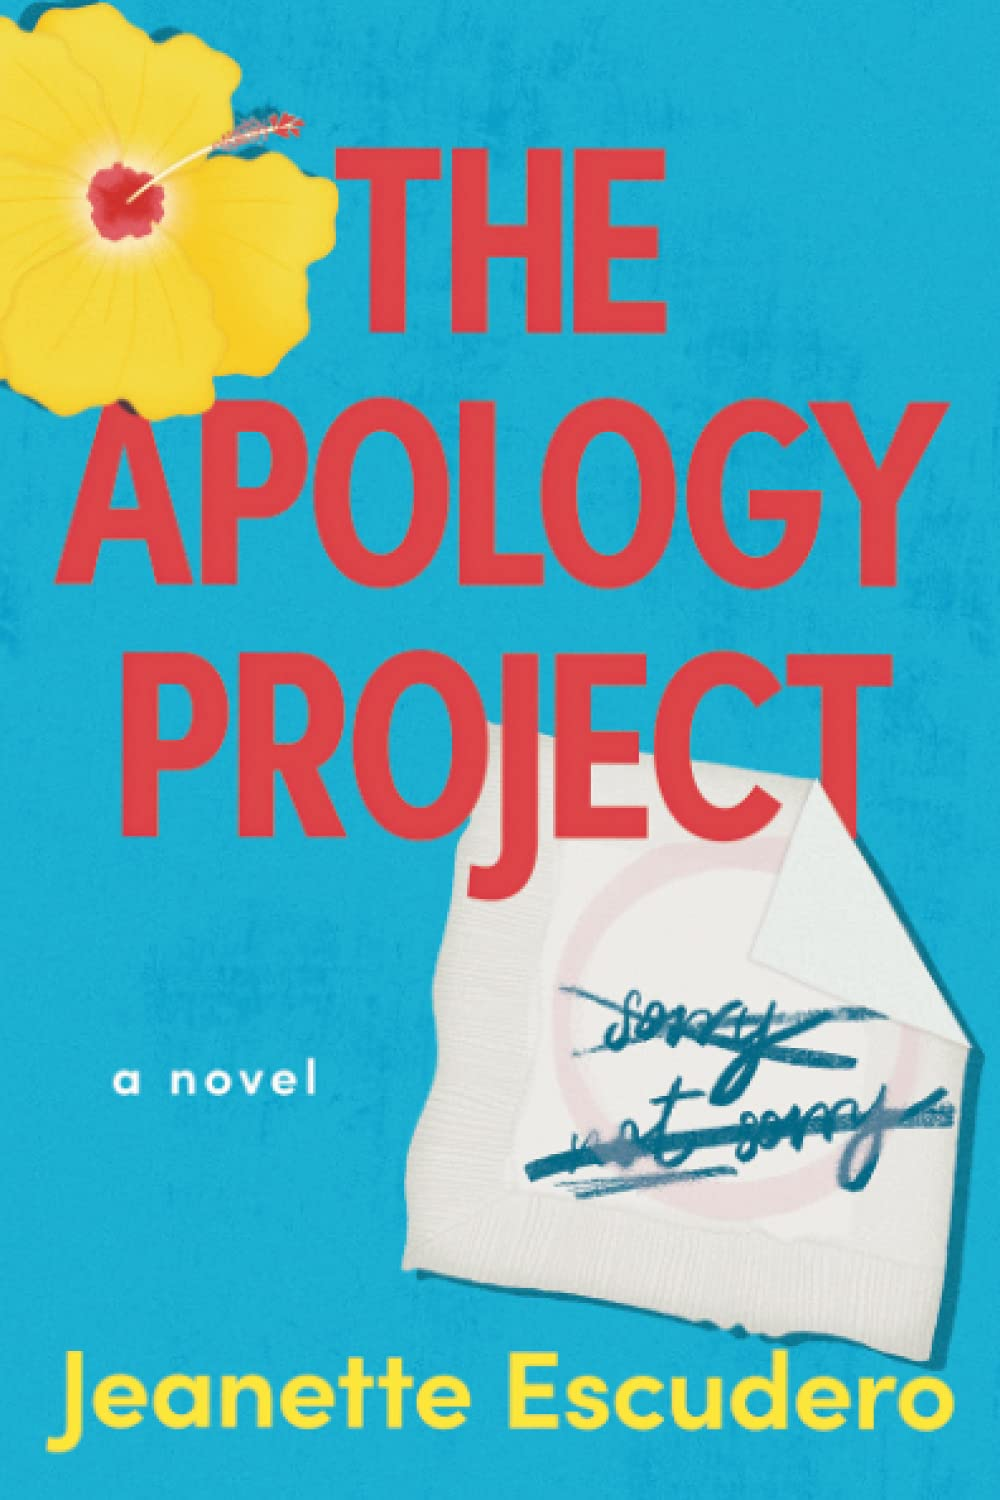 Excerpt: The Apology Project